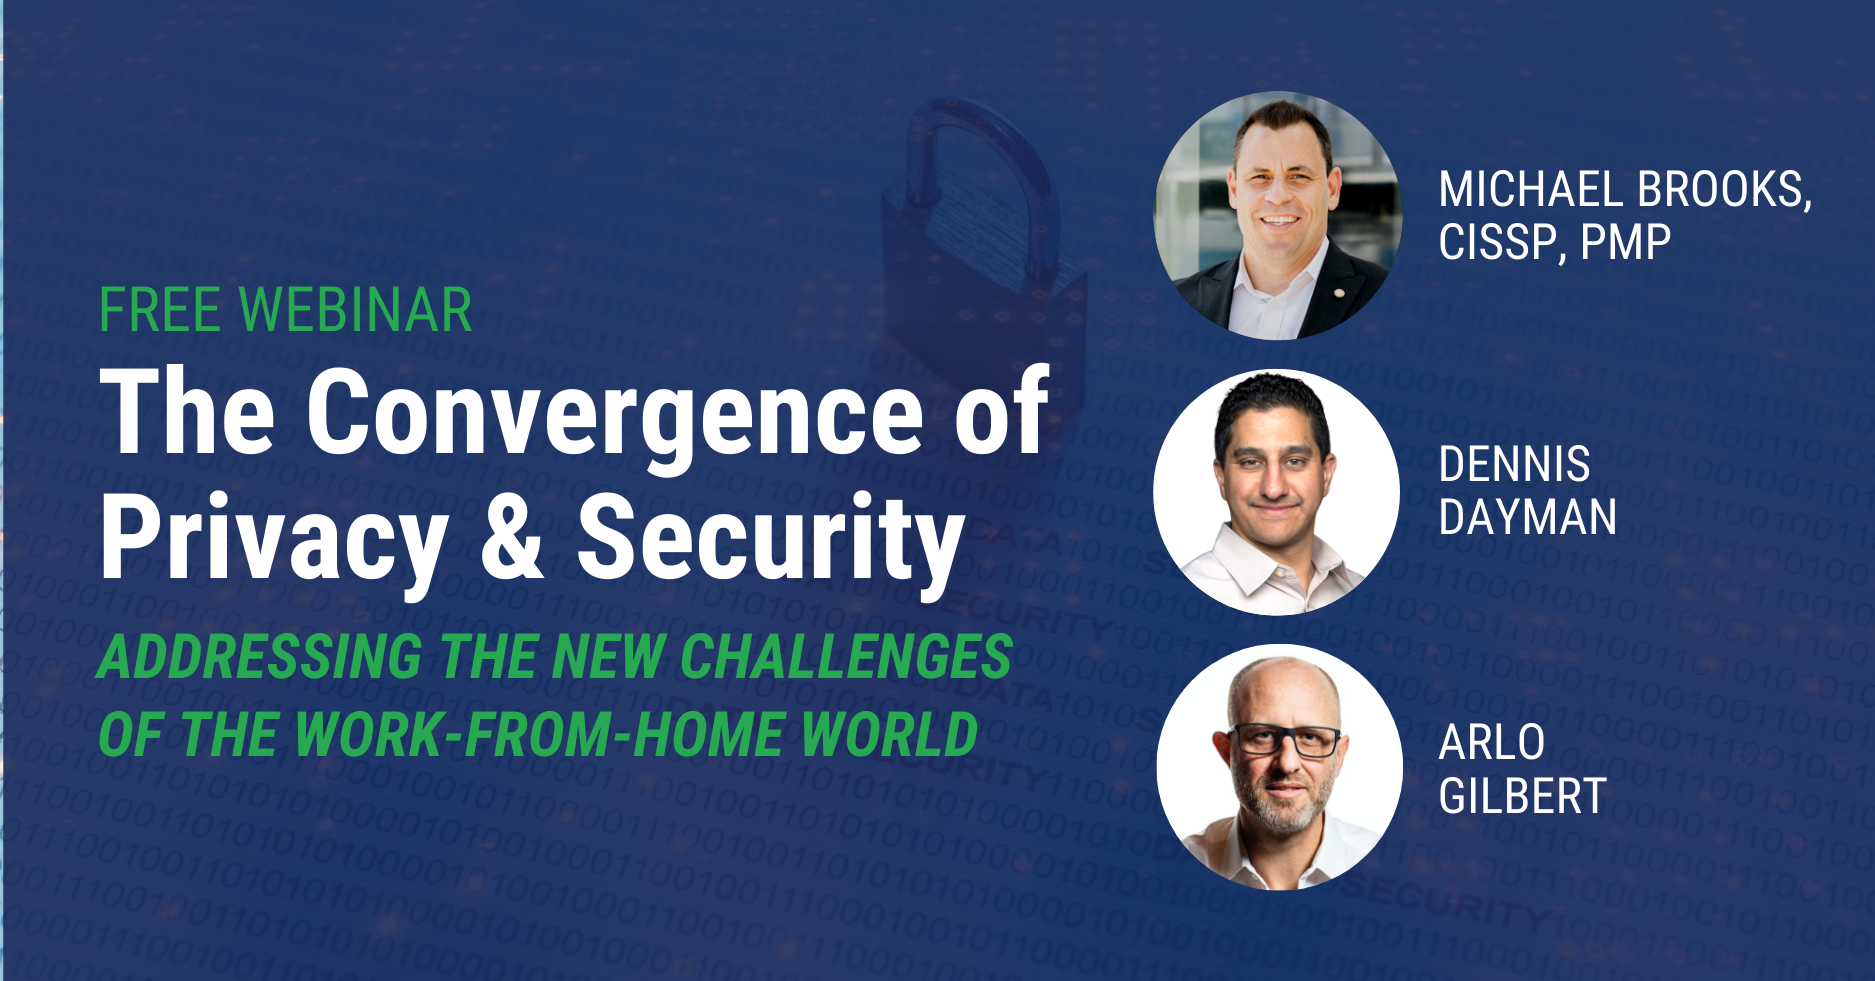 Webinar:  The Convergence of Privacy & Security:  Addressing the New Challenges of the Work-From-Home World